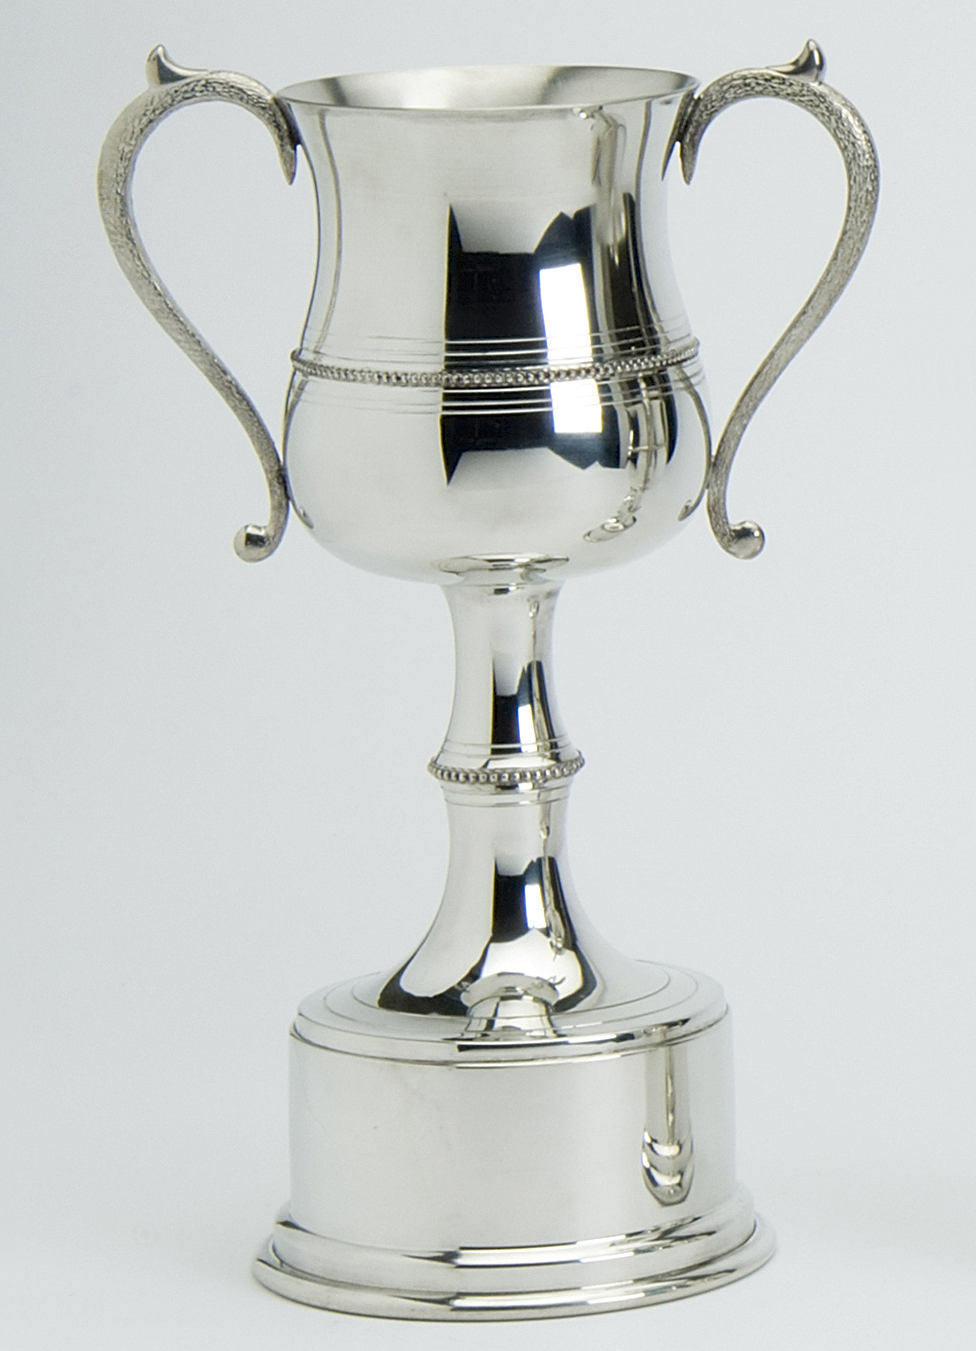 Pewter Trophies Beaded five sizes. The Pewter Trophies are available in sizes 6, 8, 10, 12, and 14 inch and have a solid base.